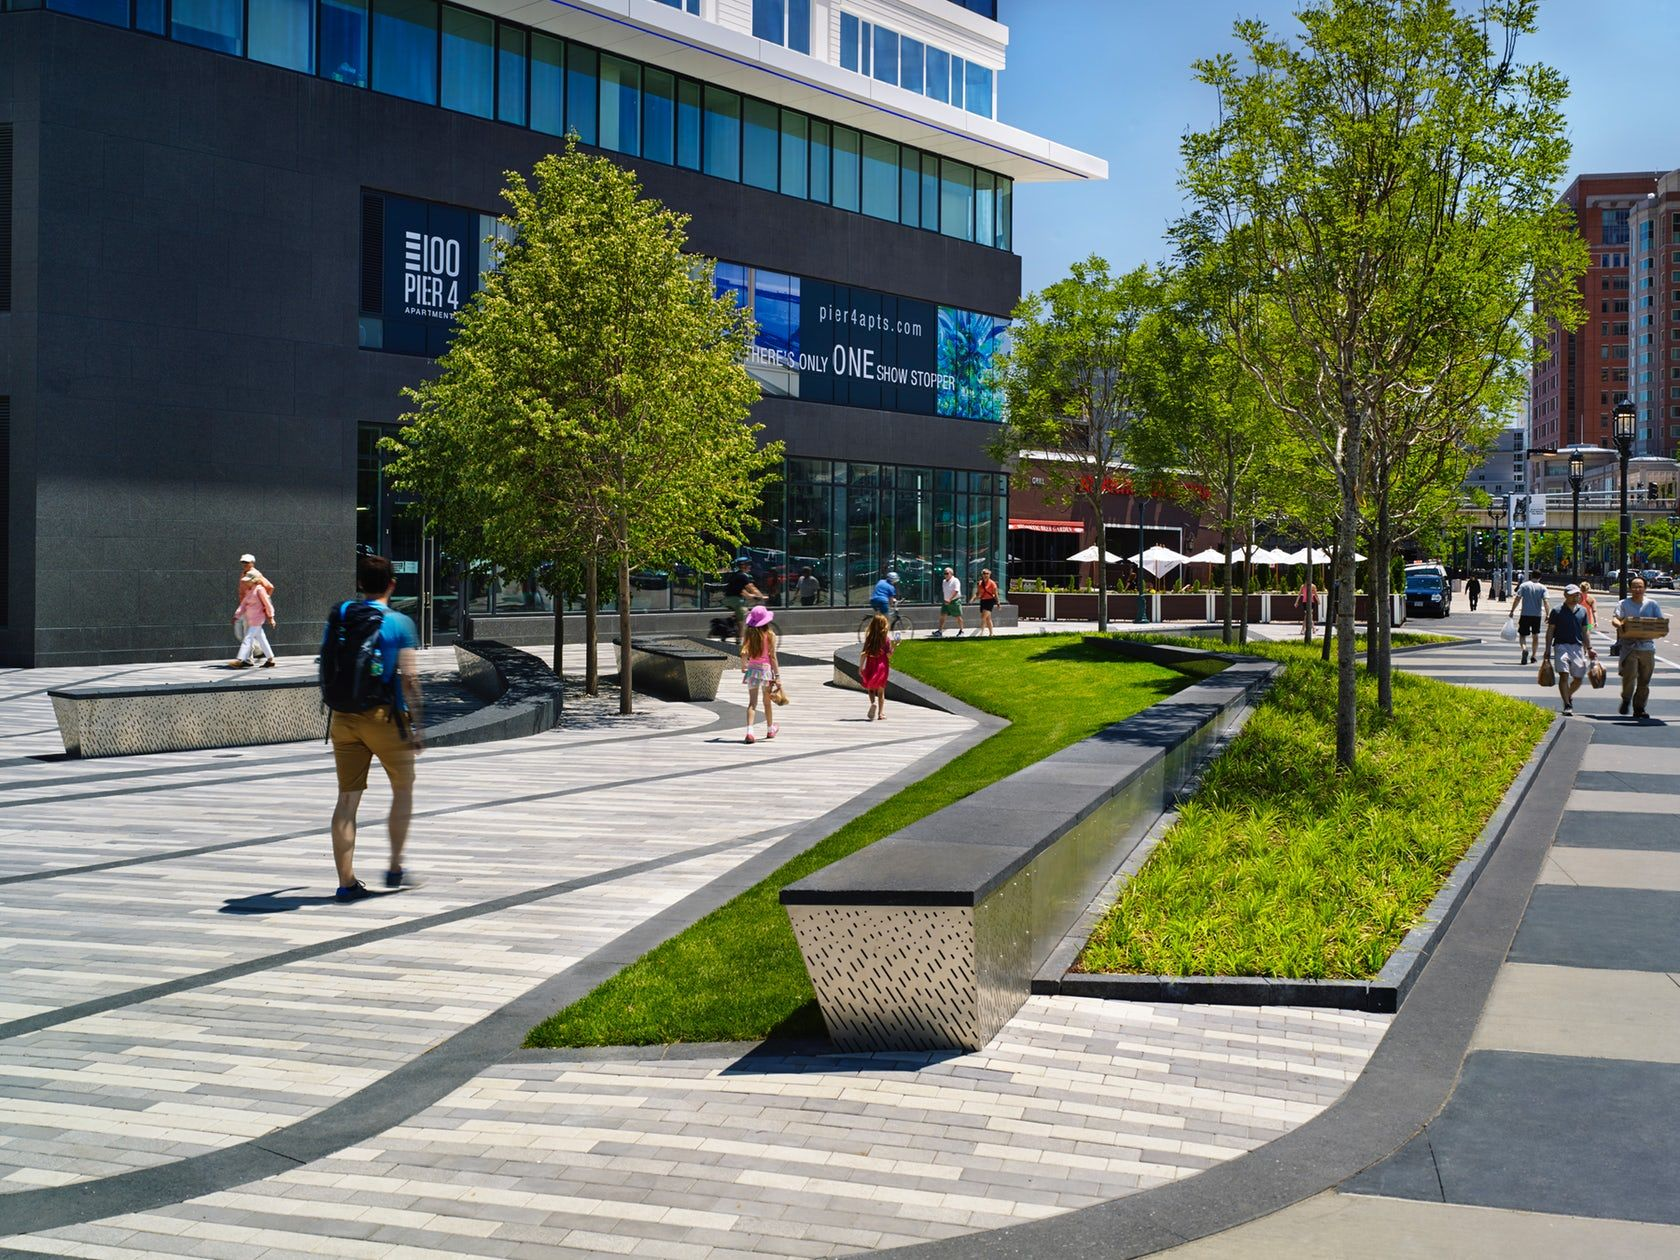 Pin by Tom Wiley on Architecture Urban Plazas